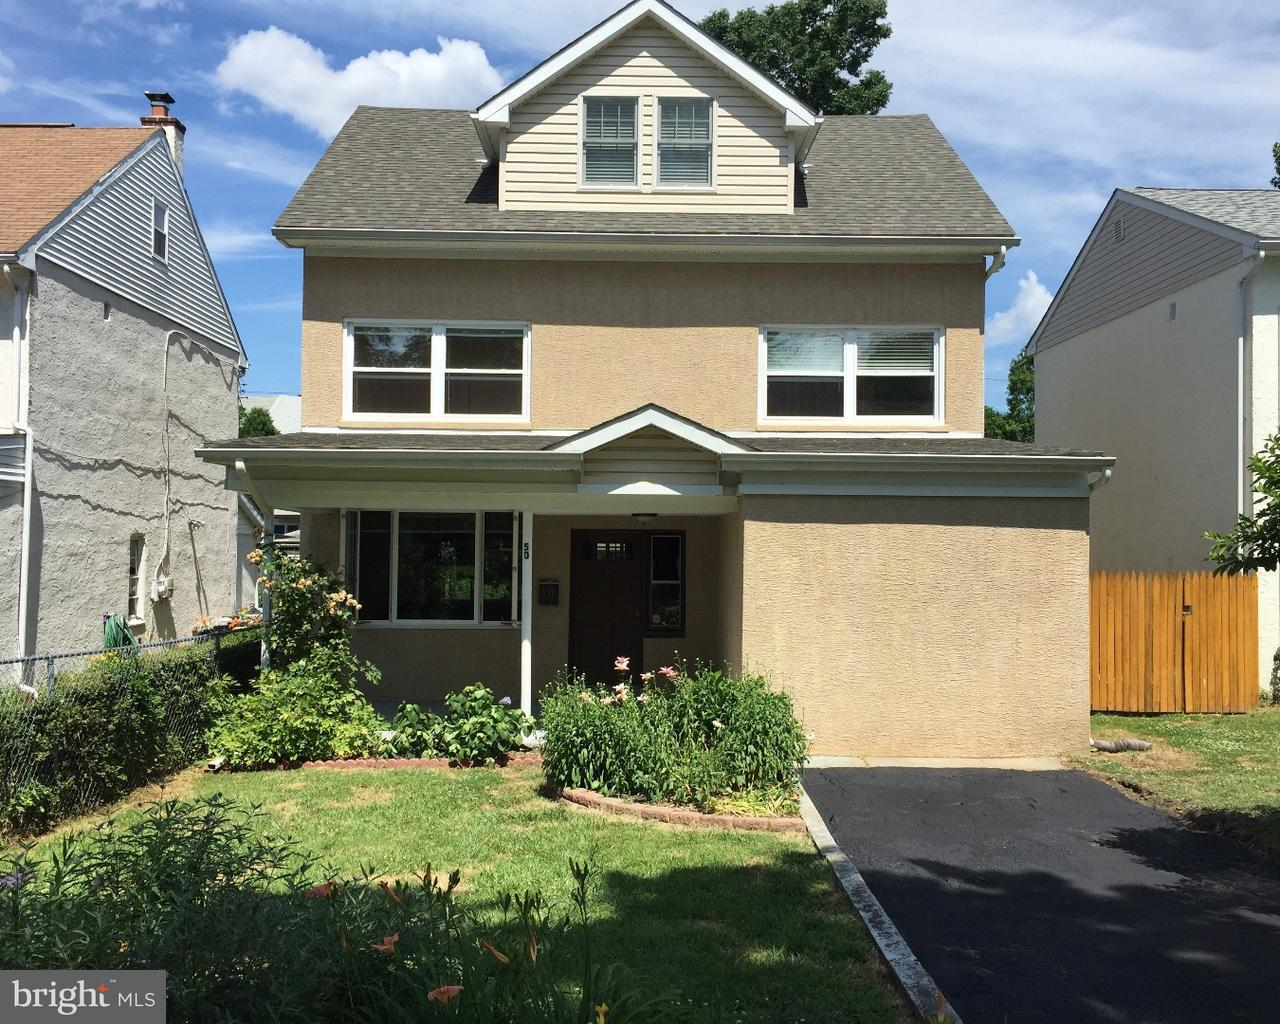 Single Family Home for Rent at 50 WENTWORTH Lane Bryn Mawr, Pennsylvania 19010 United States